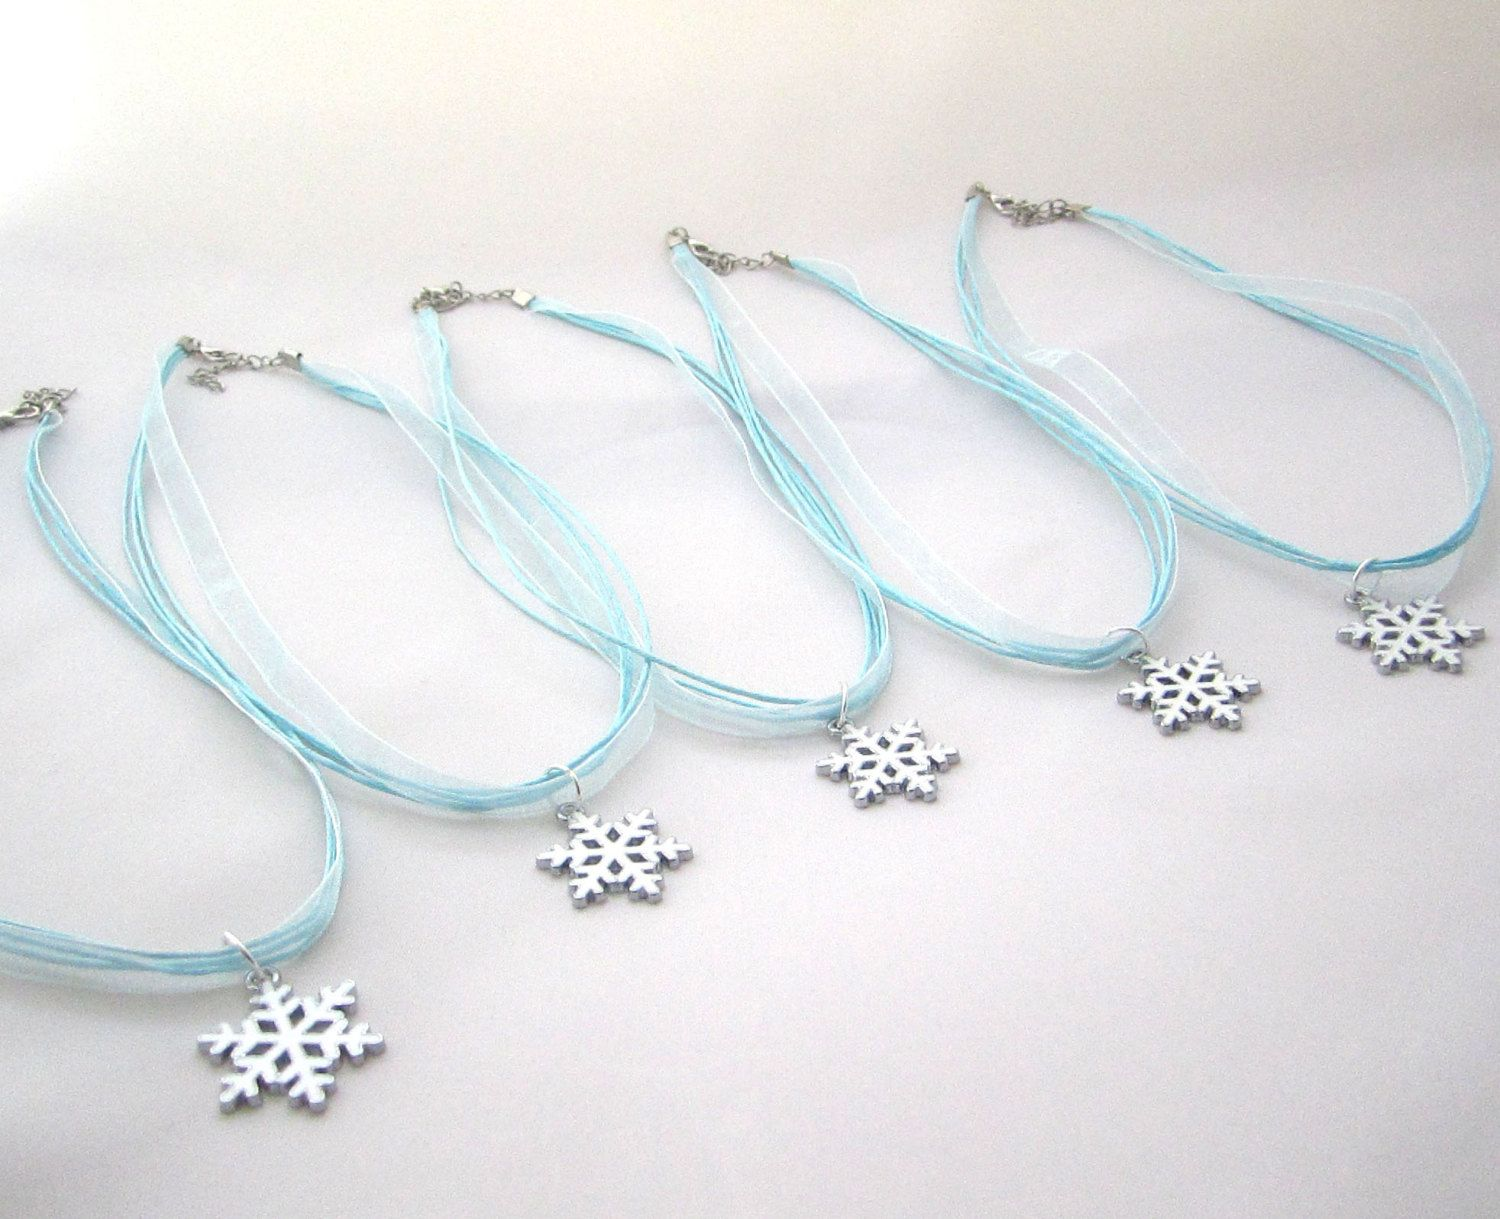 Set of 5 Snowflake Necklace Favors- Frozen Party Favors by FavorWrap on Etsy https://www.etsy.com/listing/195994403/set-of-5-snowflake-necklace-favors